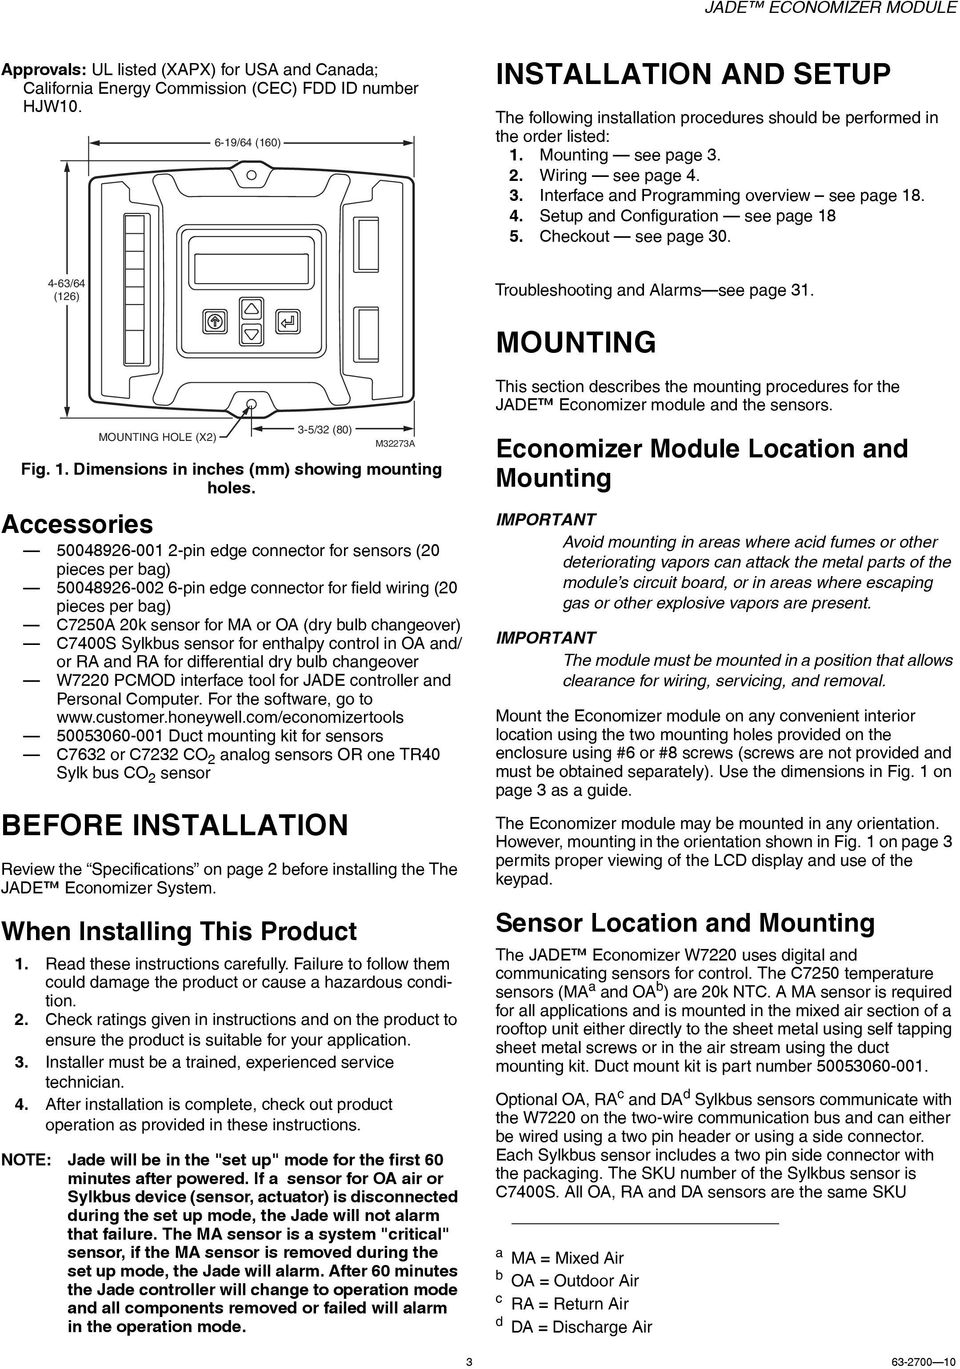 Jade Economizer Module Model W7220 Pdf Honeywell Wiring Diagram 4 Setup And Configuration See Page 8 5 Checkout 0